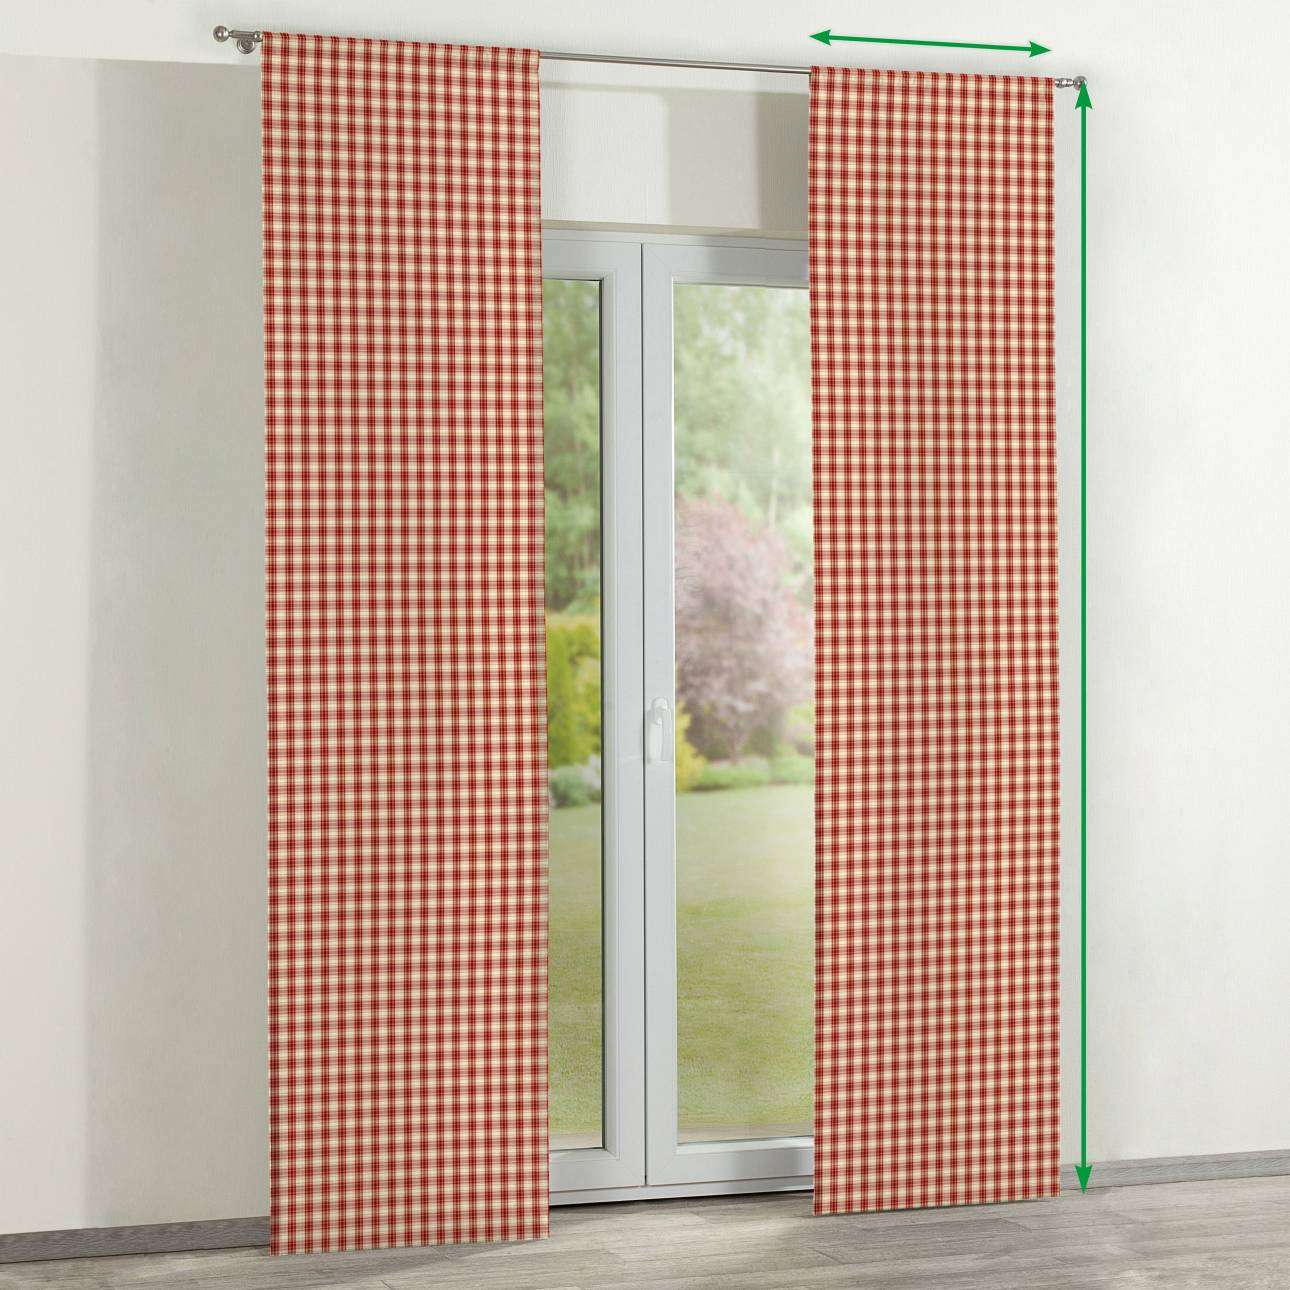 Slot panel curtains – Set of 2 in collection Bristol, fabric: 126-09